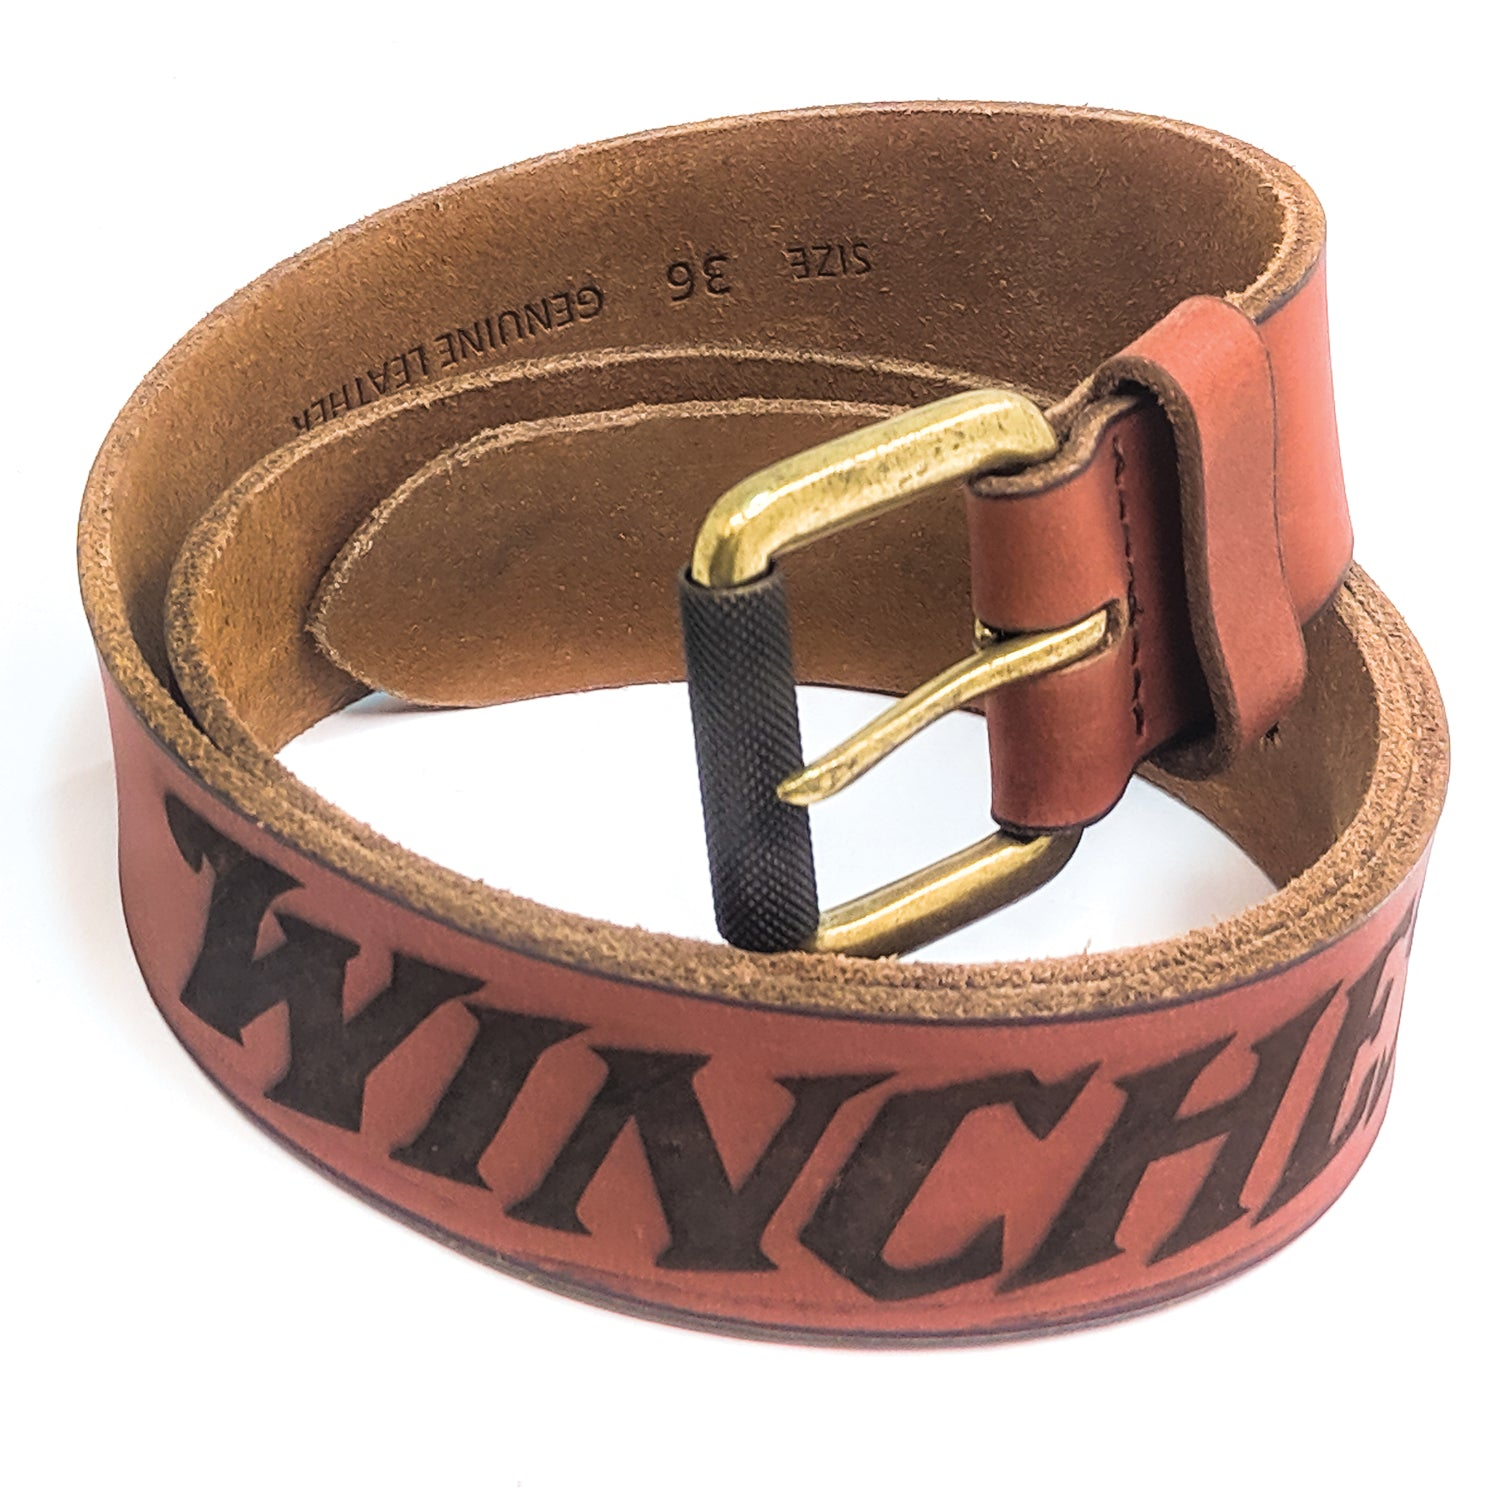 Winchester - Laredo Design Tan Color Belt, Hand Crafted in USA